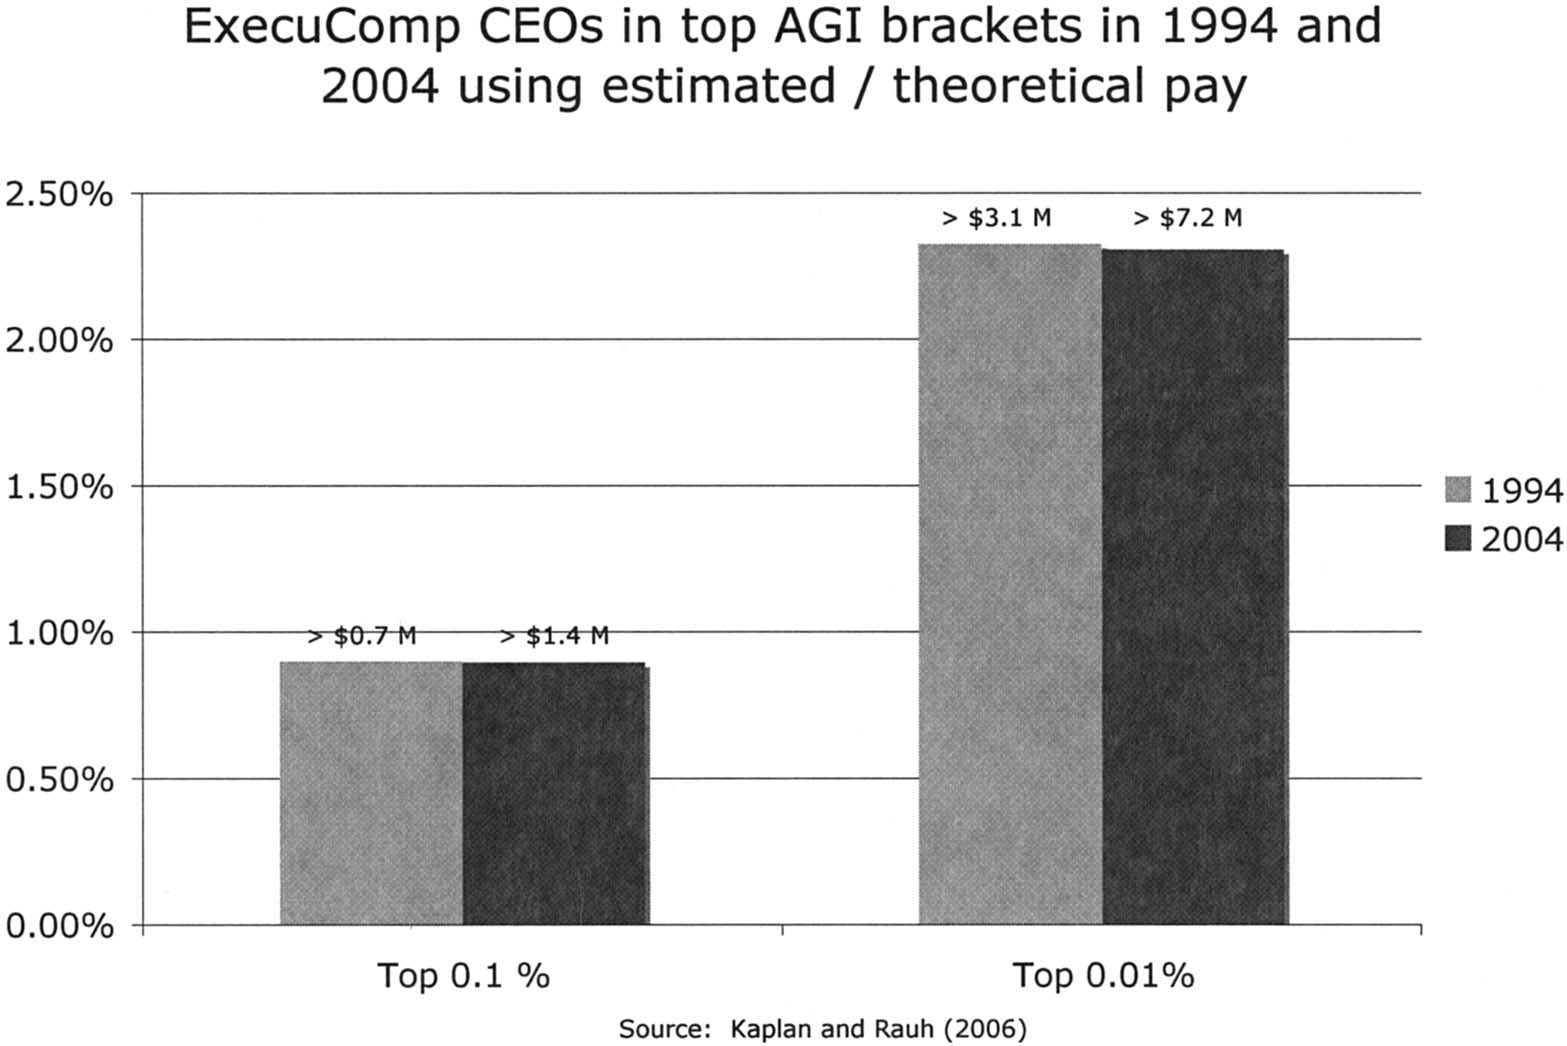 8 Academy of Management Perspectives May Figure 6 F6 F7-9 2004 than they were in 1994.